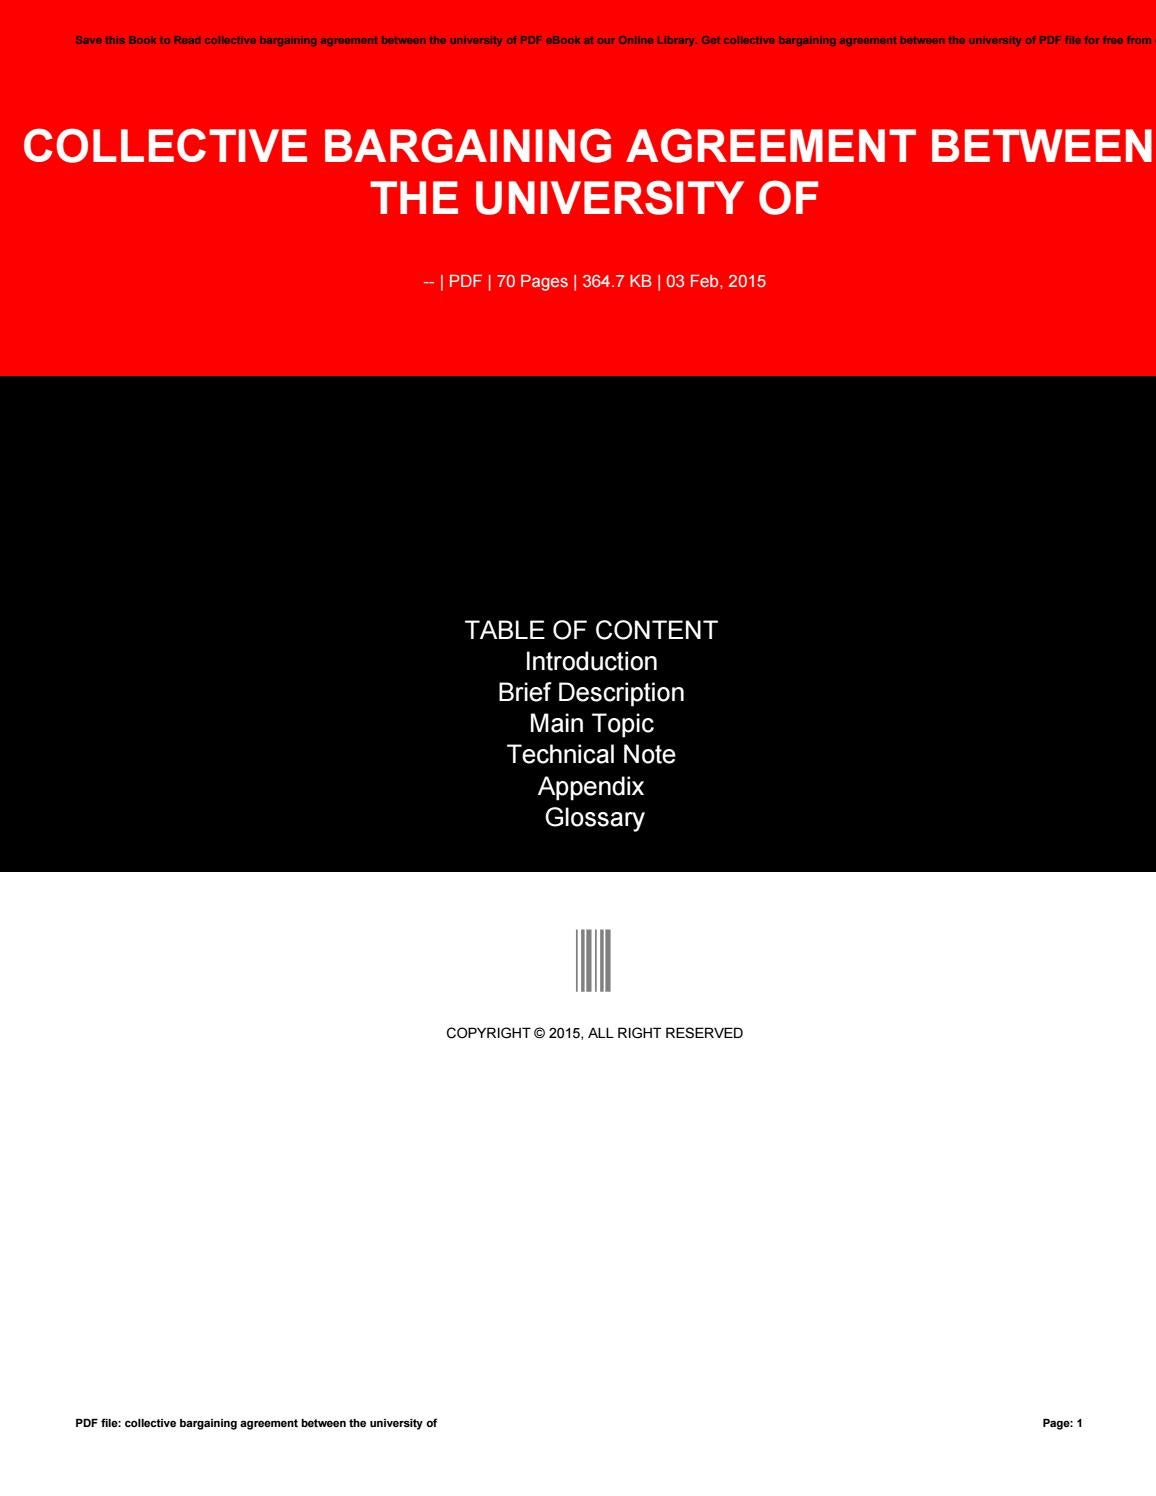 Collective Bargaining Agreement Between The University Of By